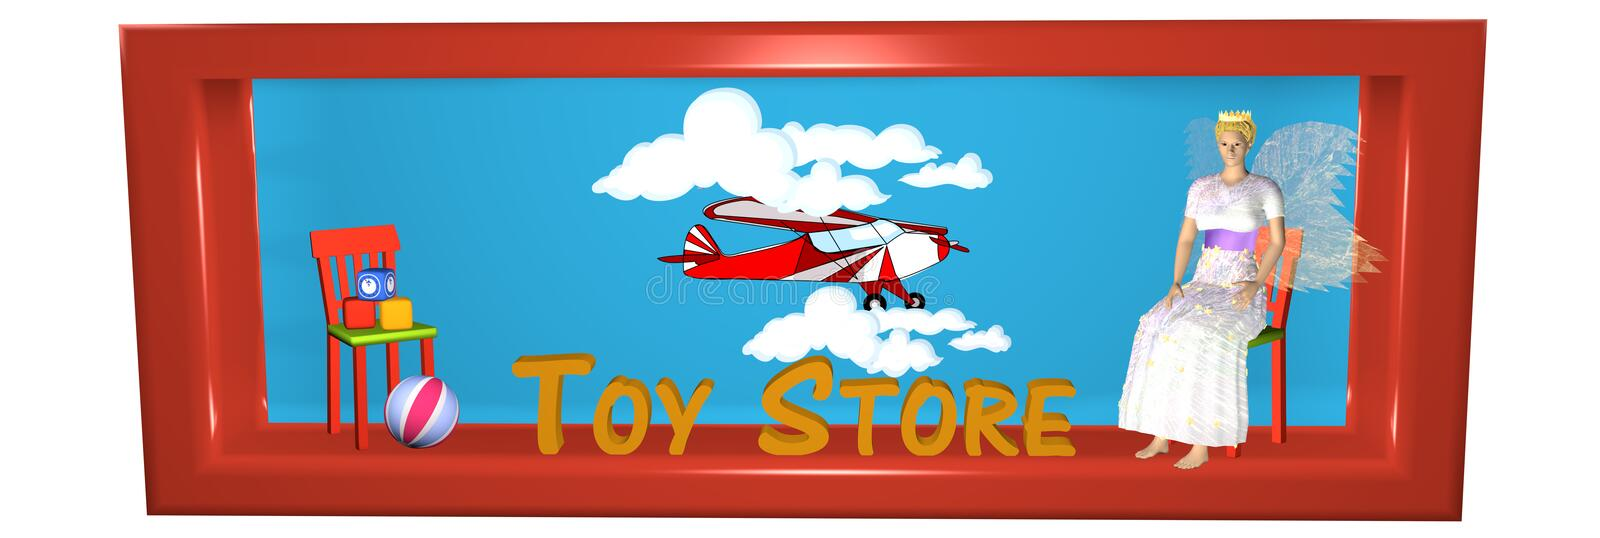 Beautiful header for an Internet shop with toys royalty free illustration